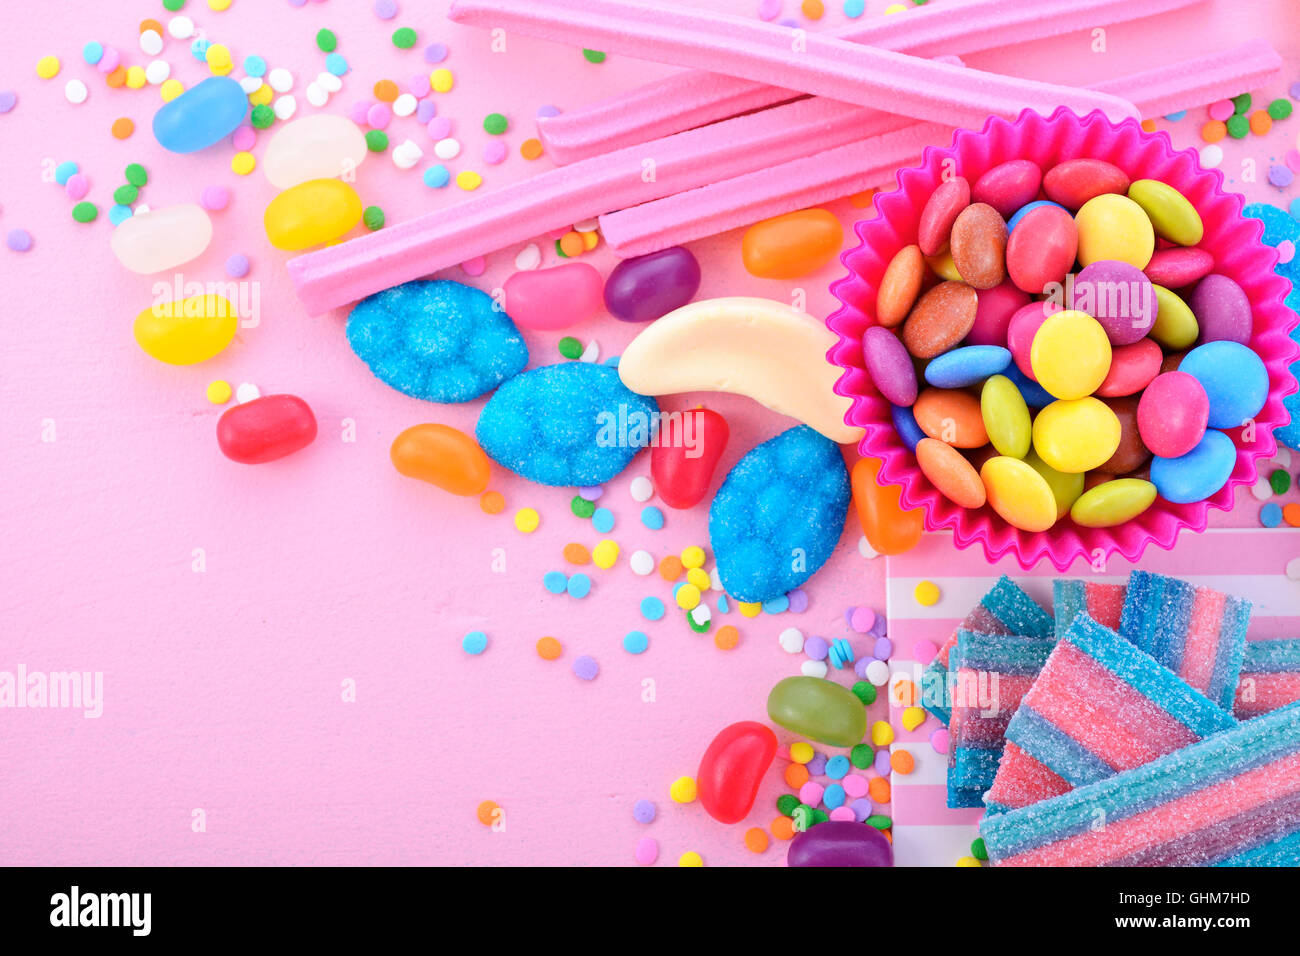 bright colorful candy background on pink wood table for